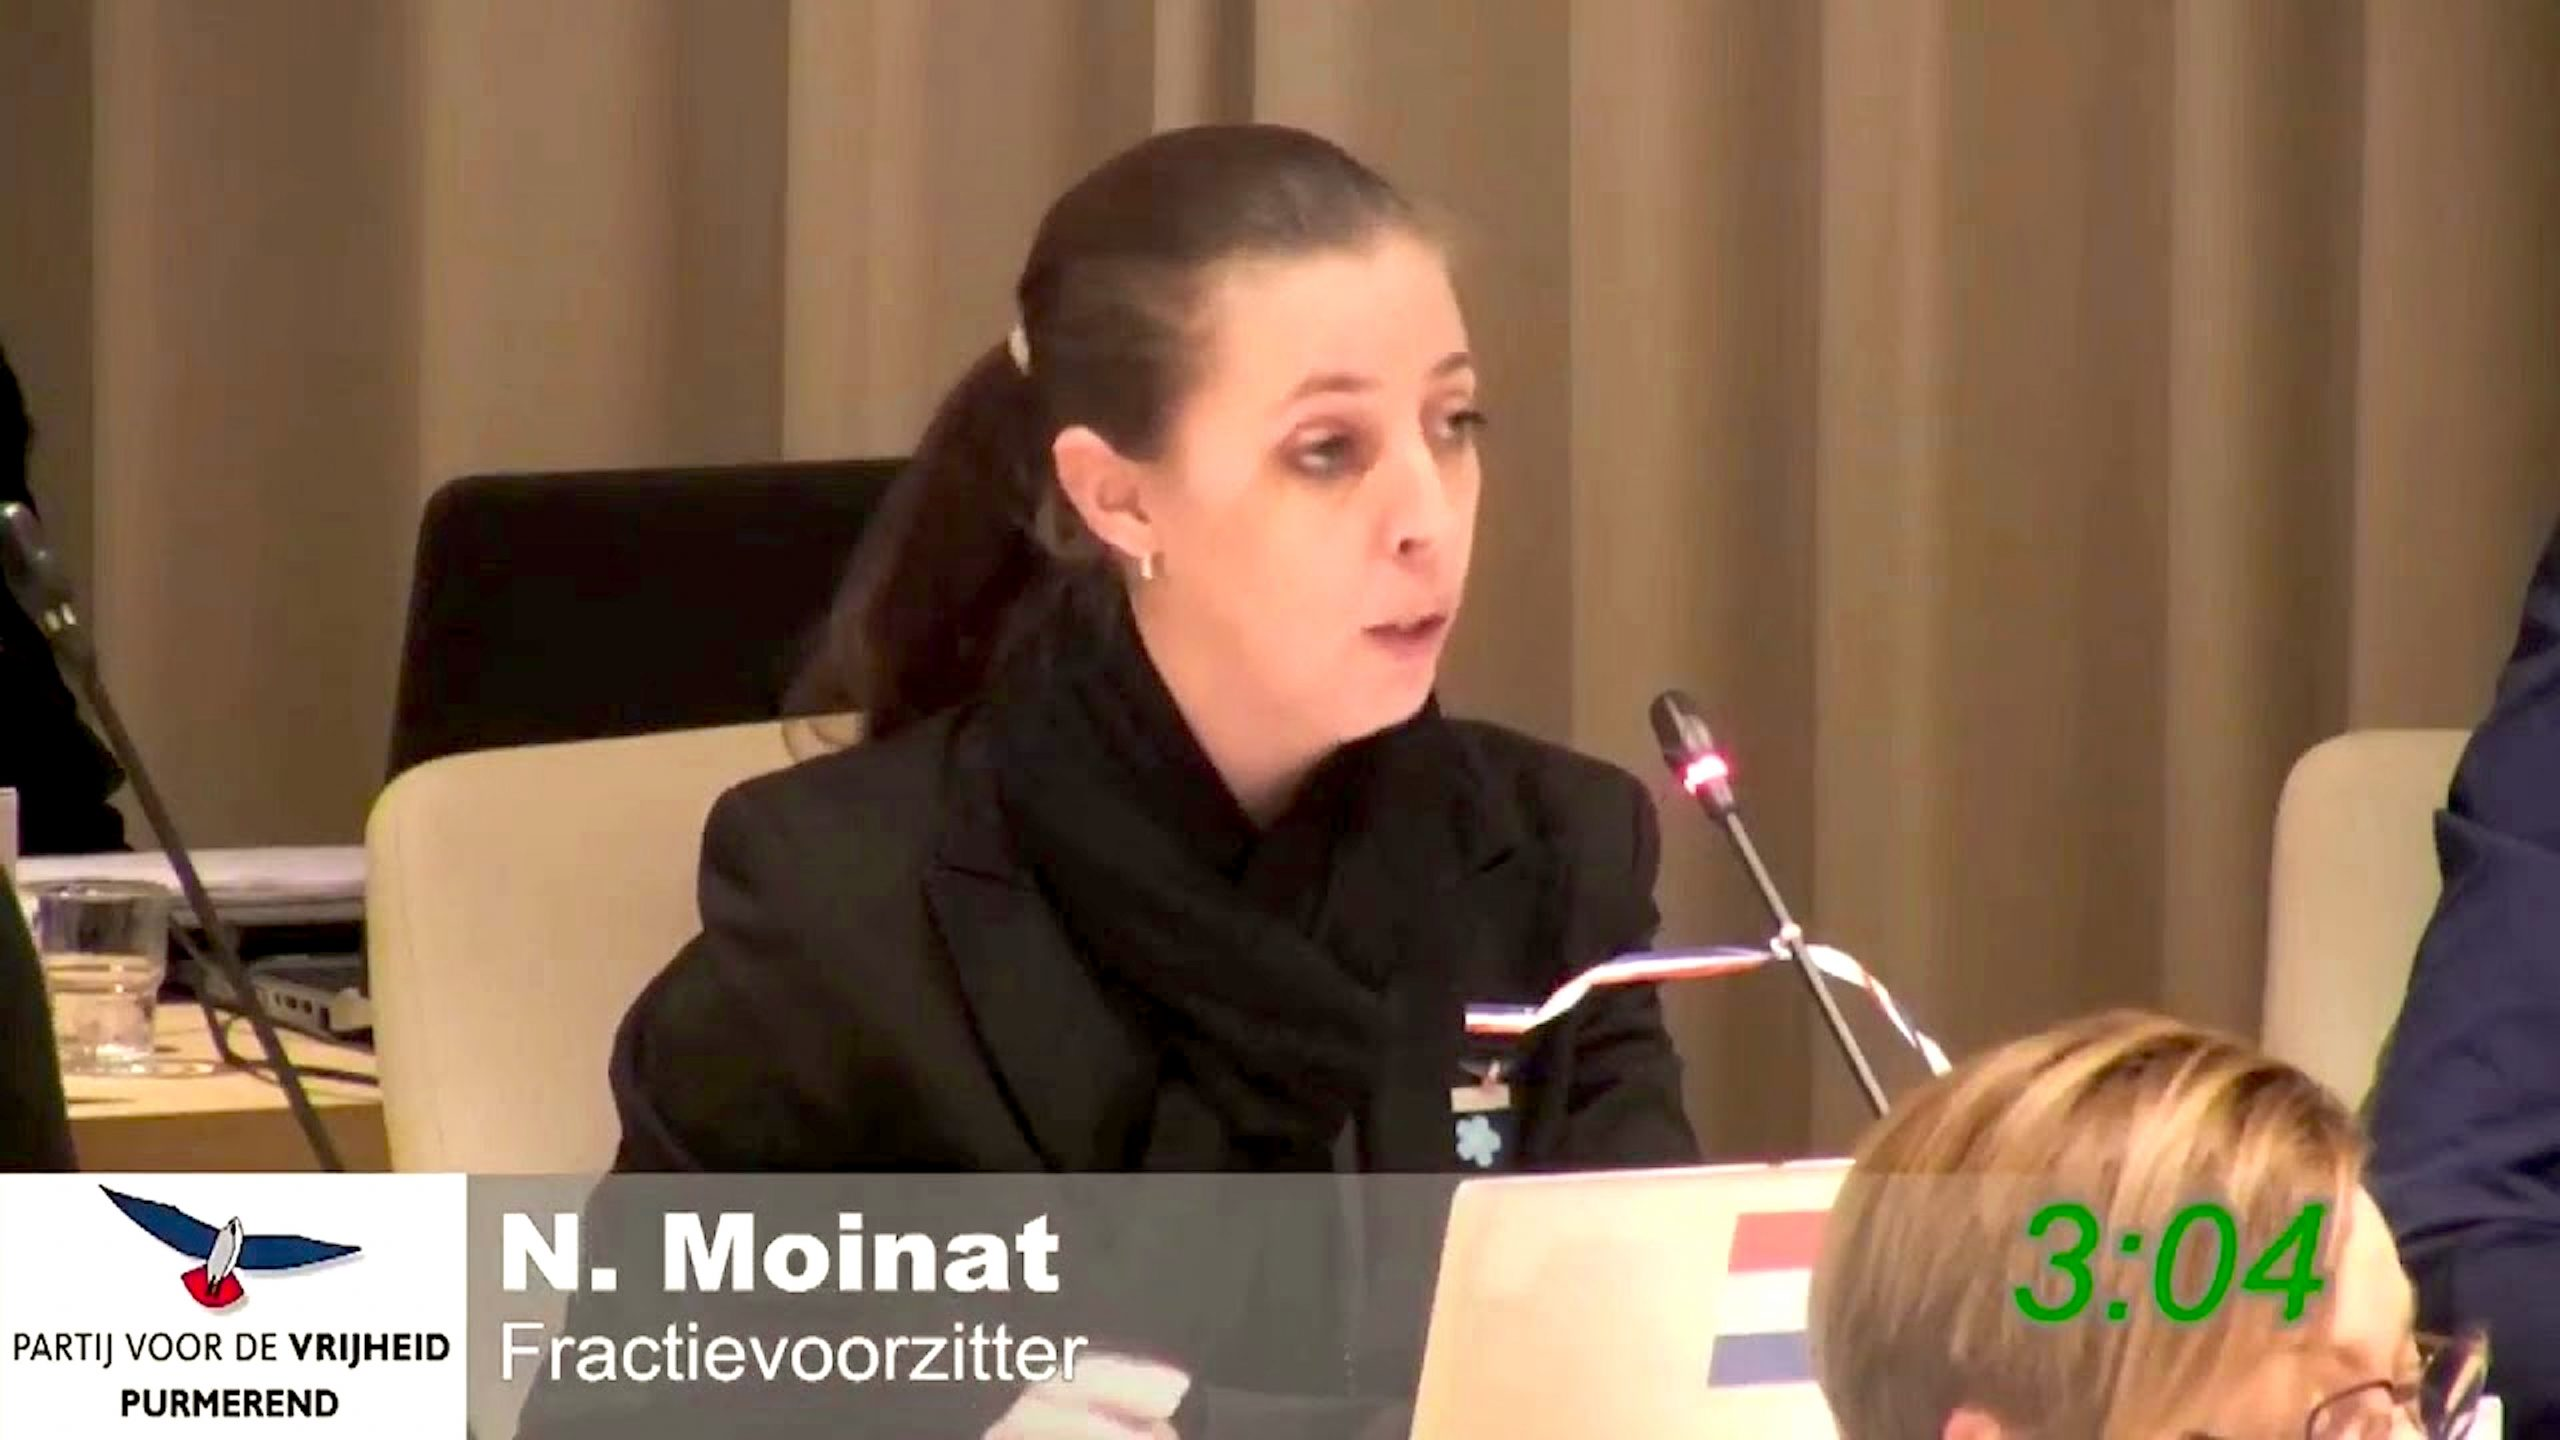 Nicole Moinat, raadslid PVV in Purmerend (foto YouTube)